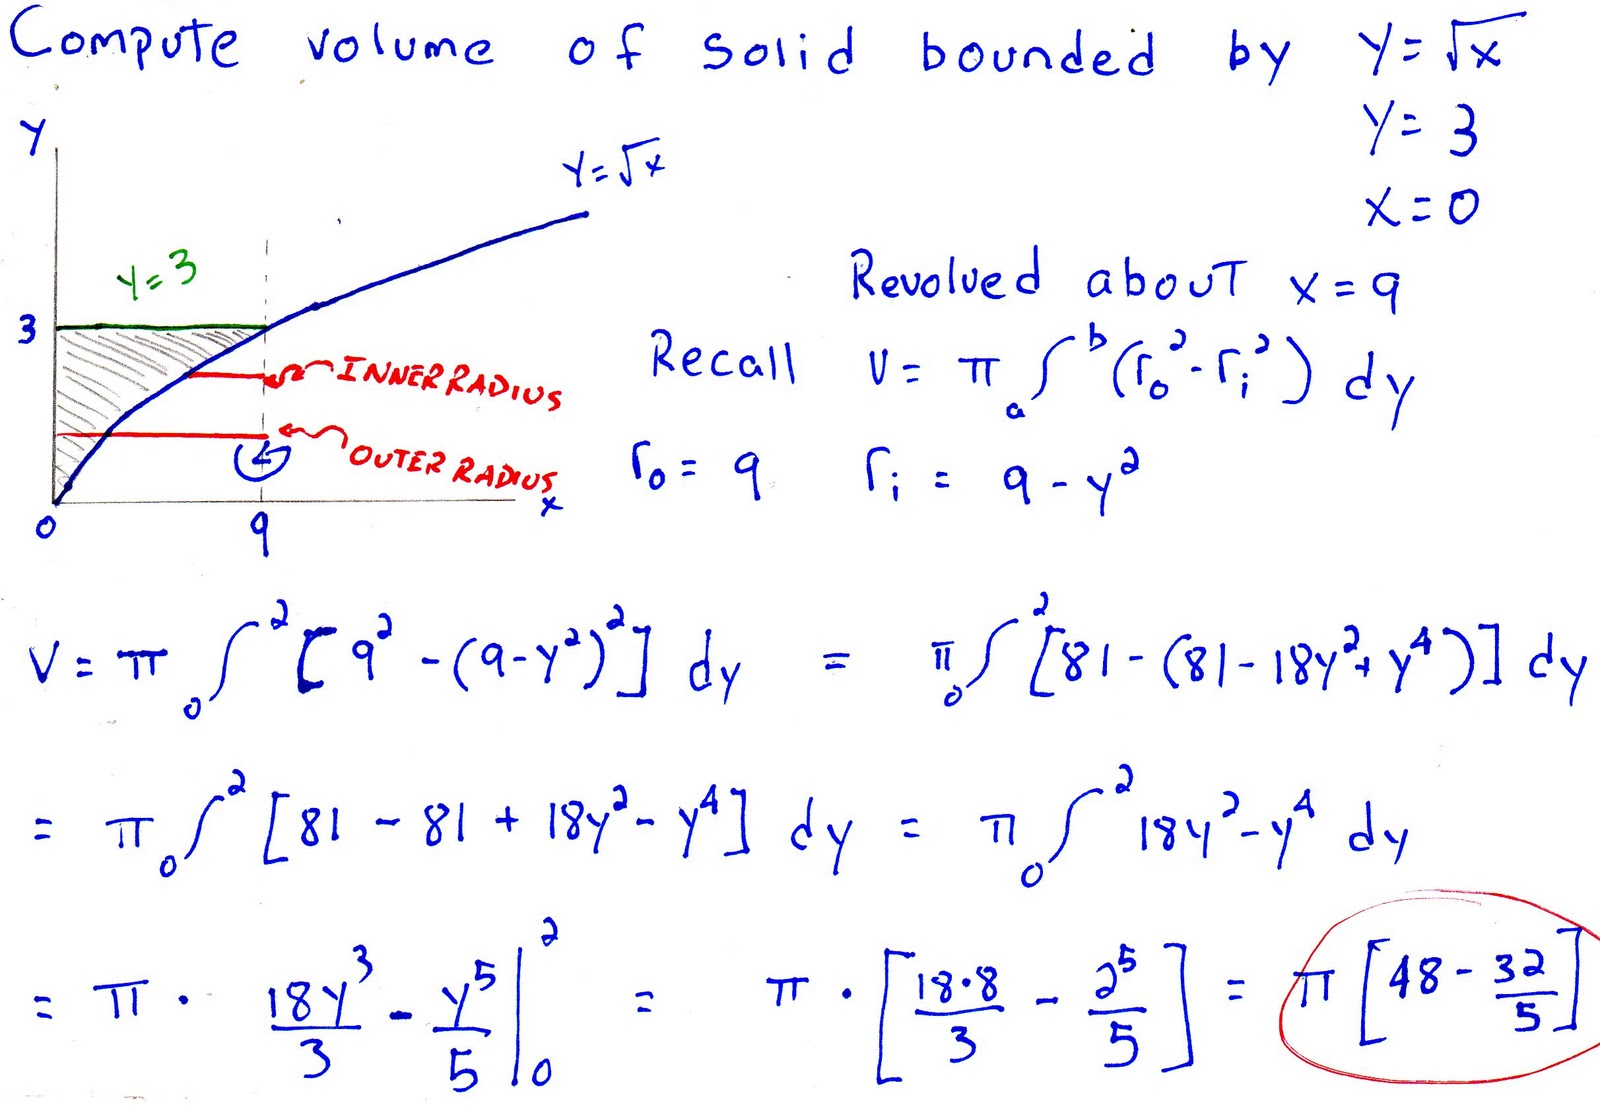 Calculus Use Method Of Washers To Find Volume